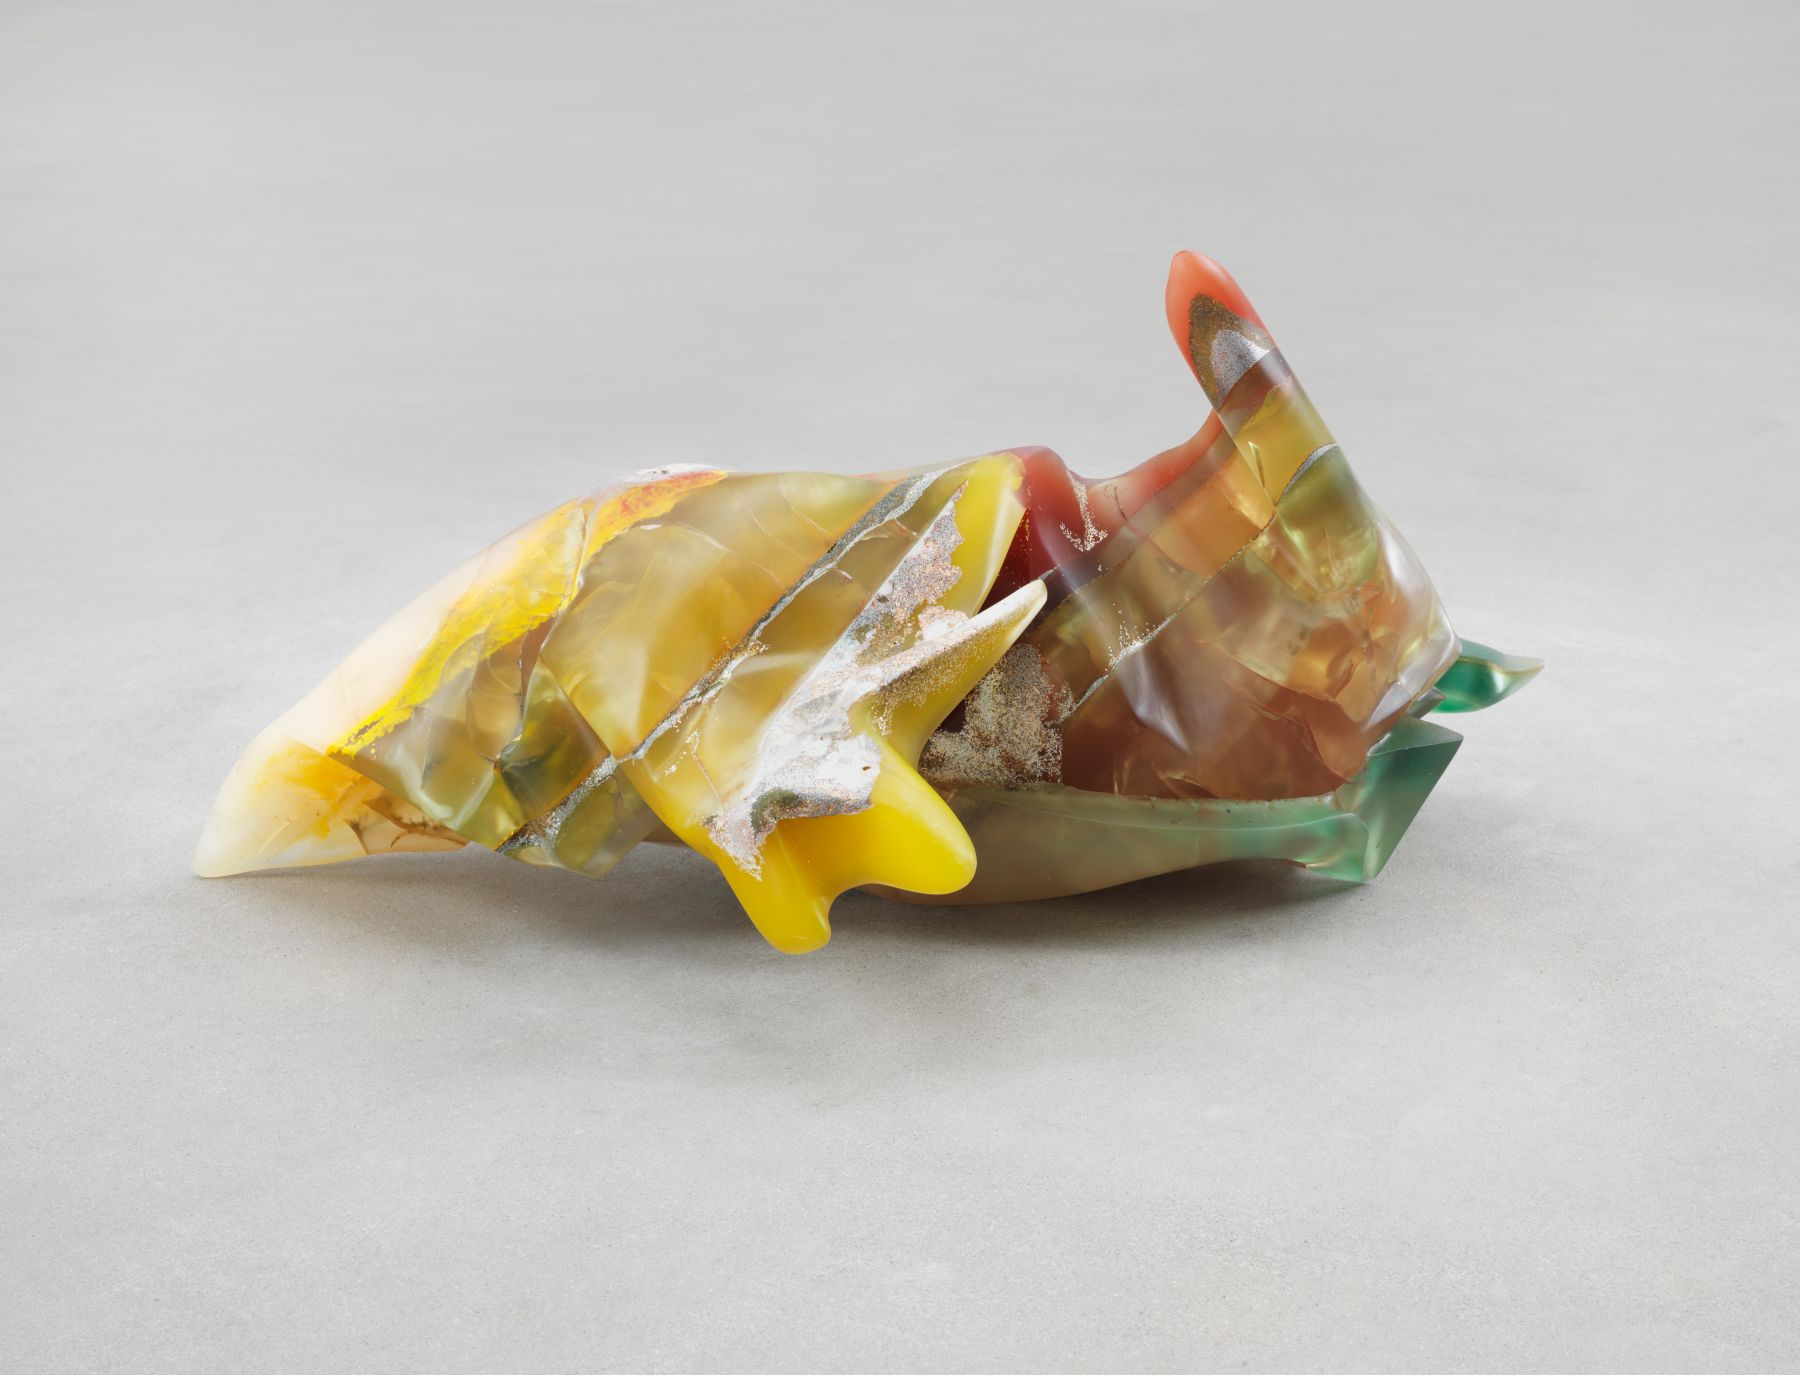 Bennington VIII, 1970, Polyester resin, milled glass, plaster, glitter, and dry pigment